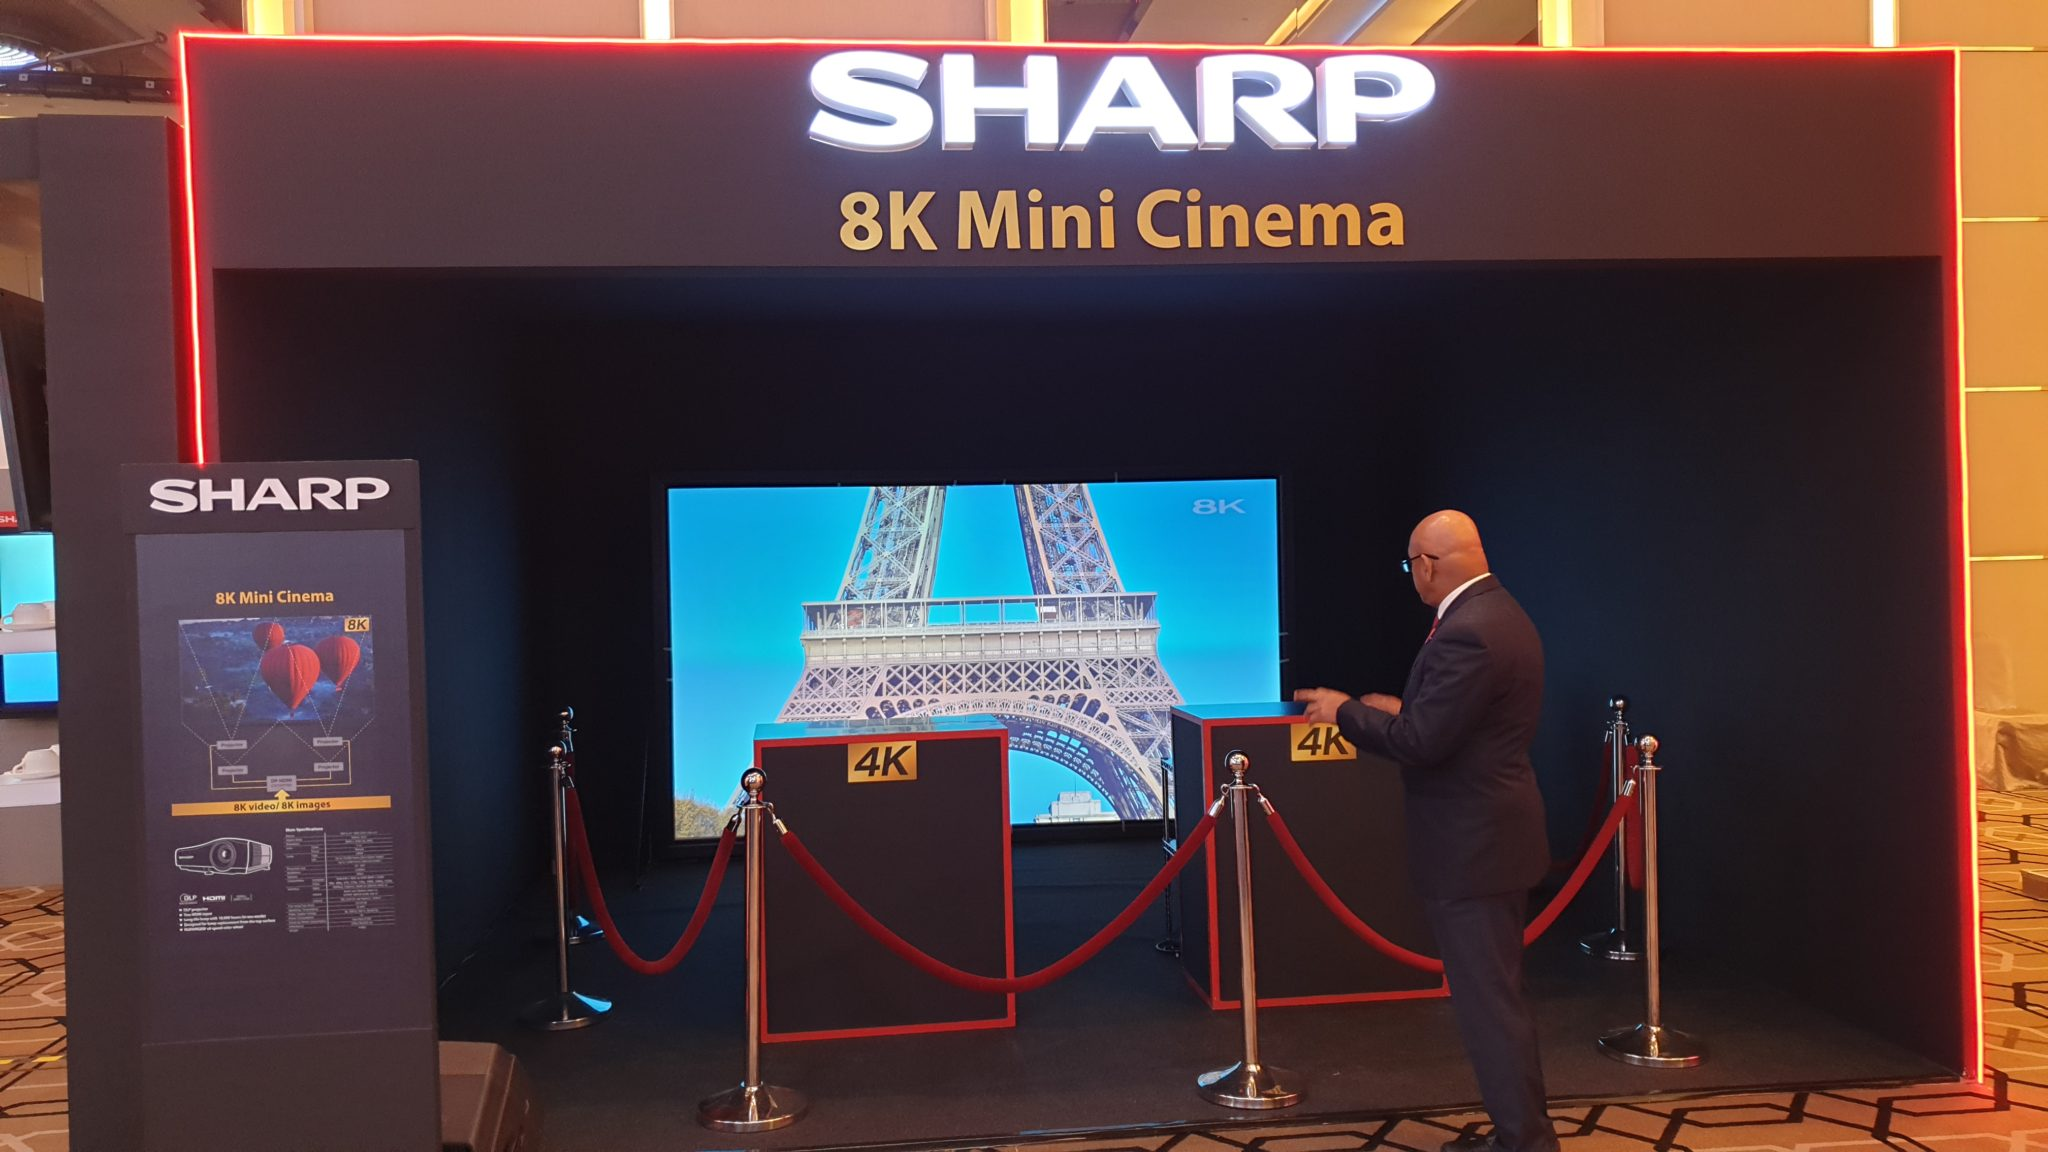 Sharp Smart Connected 2020 Conference 8K mini cinema